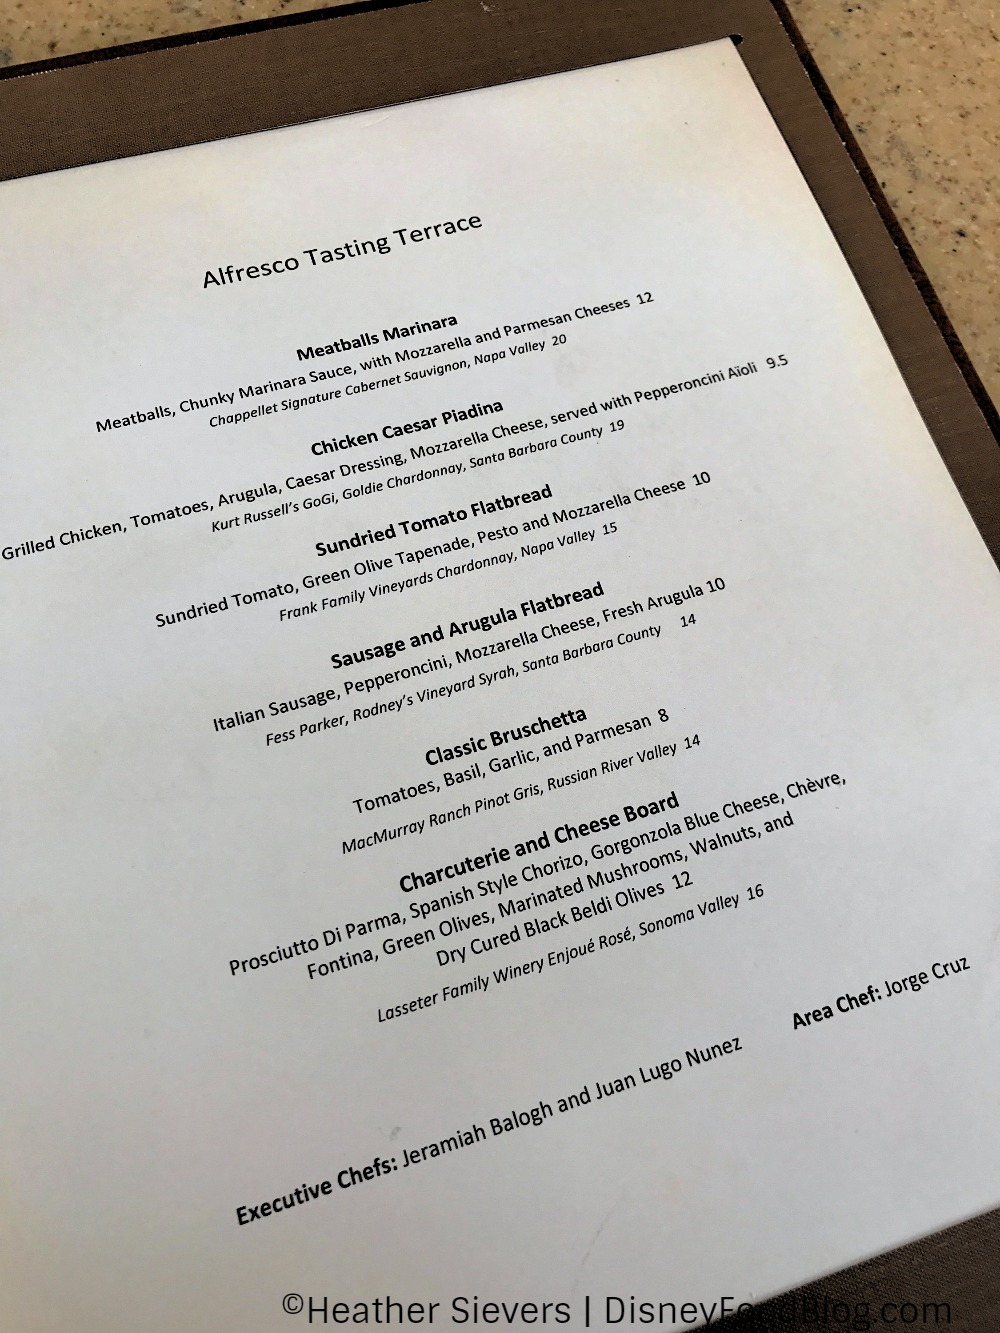 Updated menu at alfresco tasting terrace in disney for Terrace restaurant menu